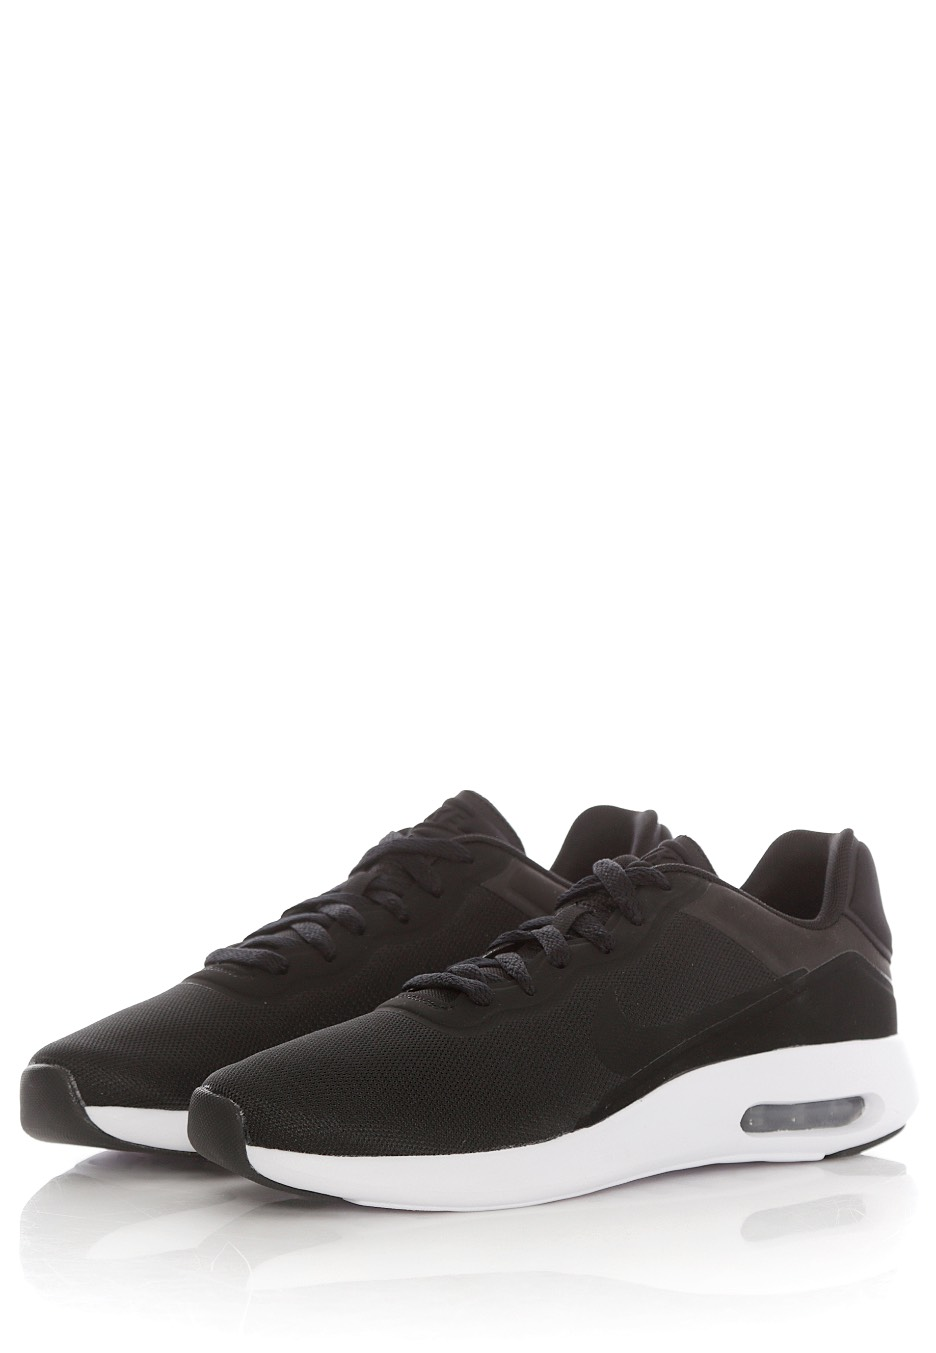 sale retailer 41c34 8813e ... where to buy nike air max modern essential black black anthracite white  shoes 599ef 23721